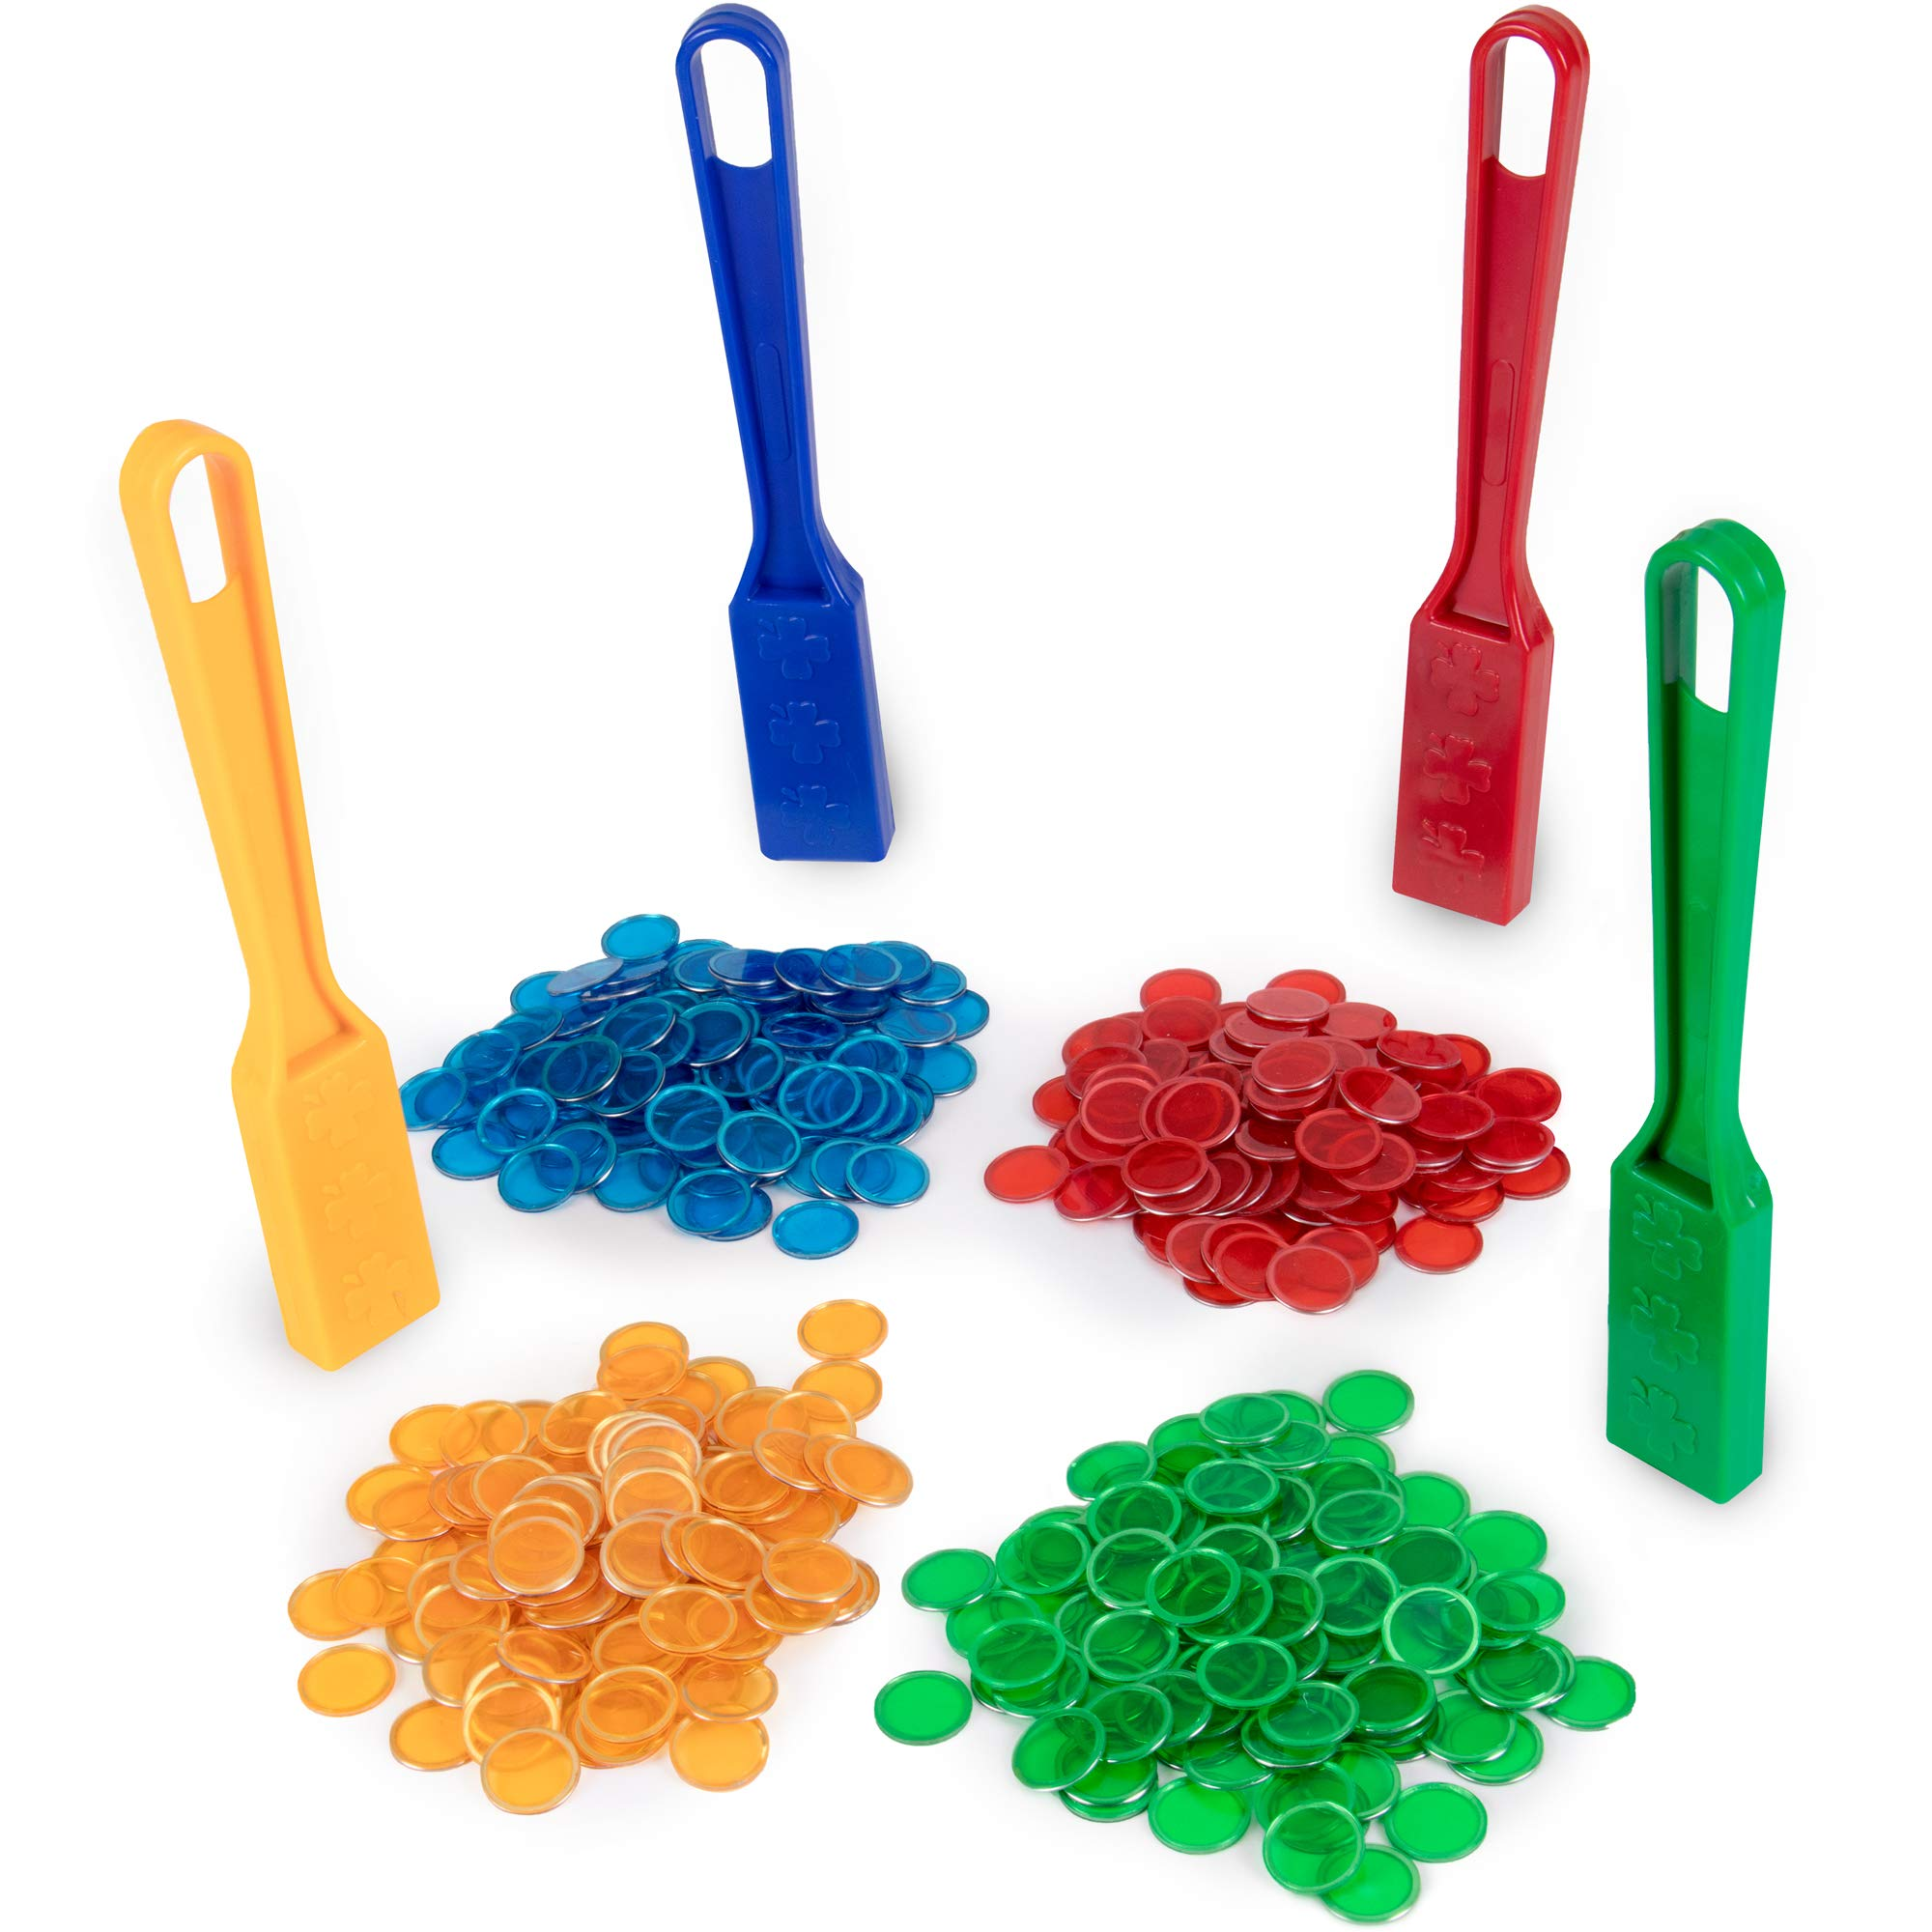 Magnetic Bingo Wand 4-Pack & 400 Colorful Metal-Ring Bingo Chips | Educational STEM Resource | Kids Classroom Learning Toys | Science Play to Teach Counting, Pointing, and Sharing